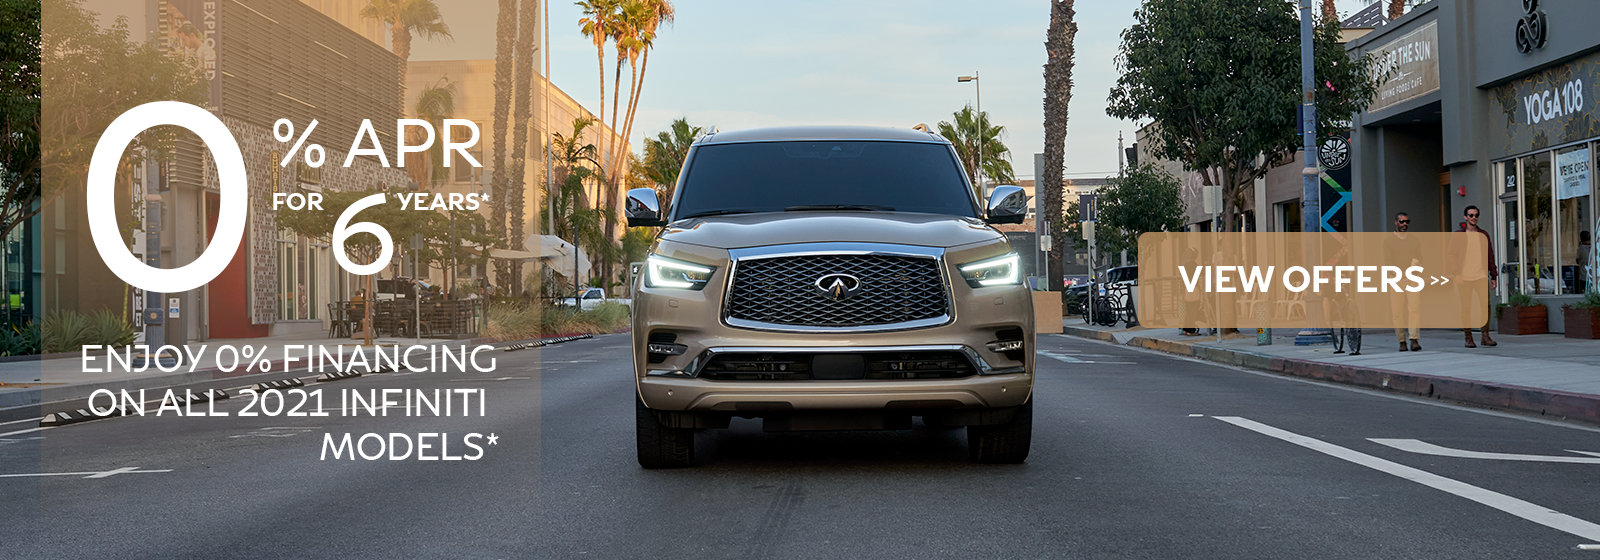 0% APR Financing for 72 months on 2021 INFINITI models